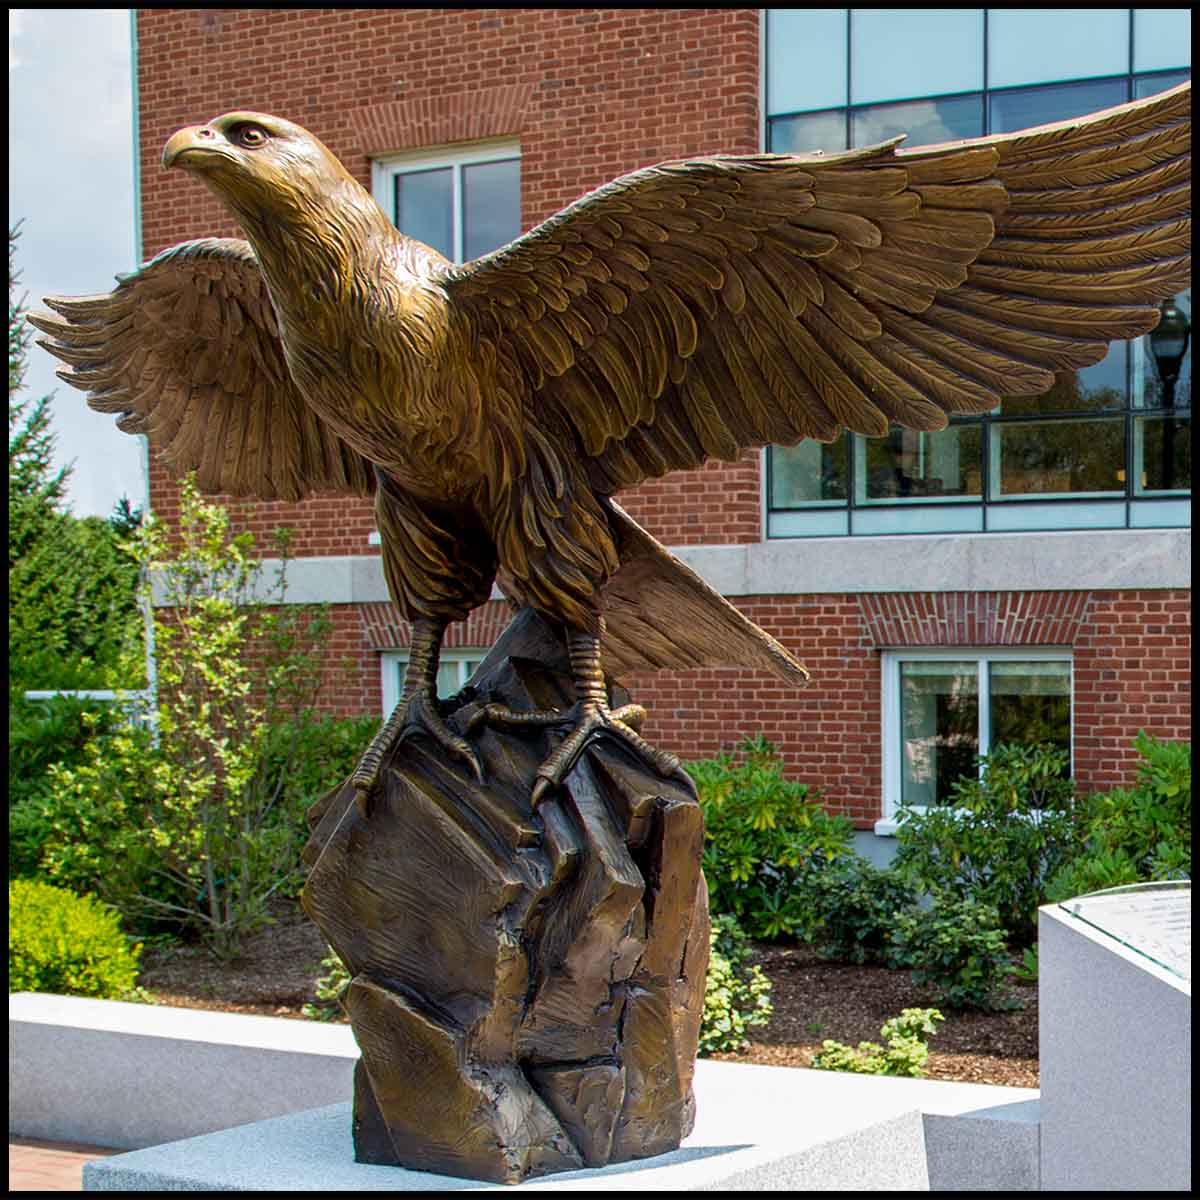 photo of bronze sculpture of eagle with wings open on rocky surface on top of granite base surrounded by other stonework in brick plaza in front of a brick building